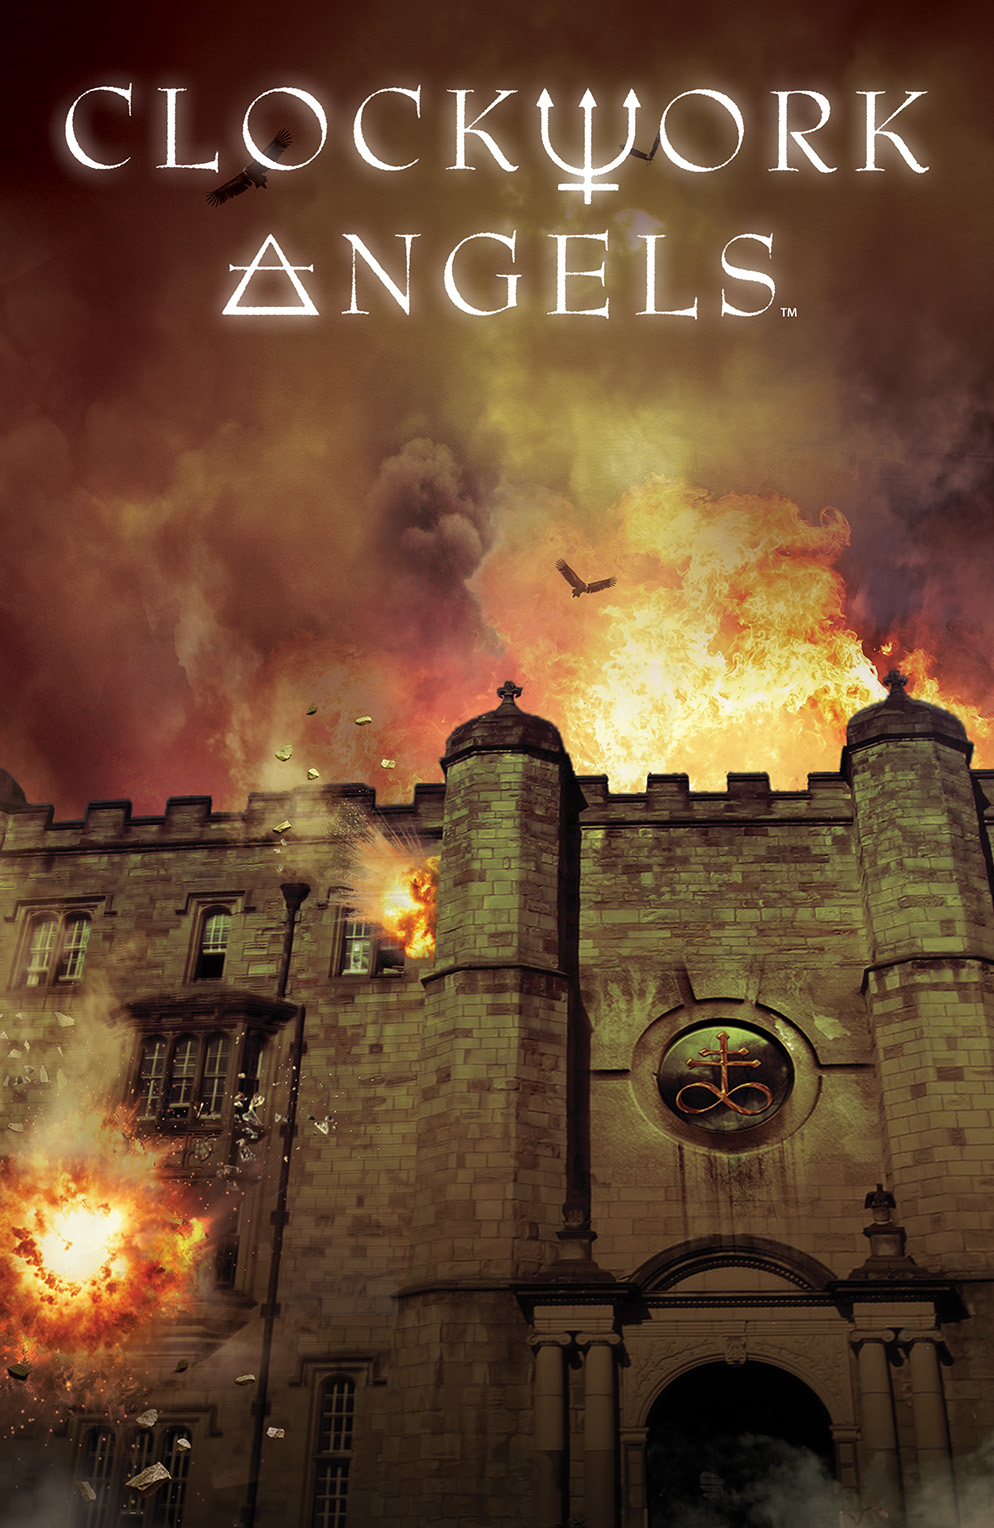 CLOCKWORK ANGELS #4 Cover by Hugh Syme